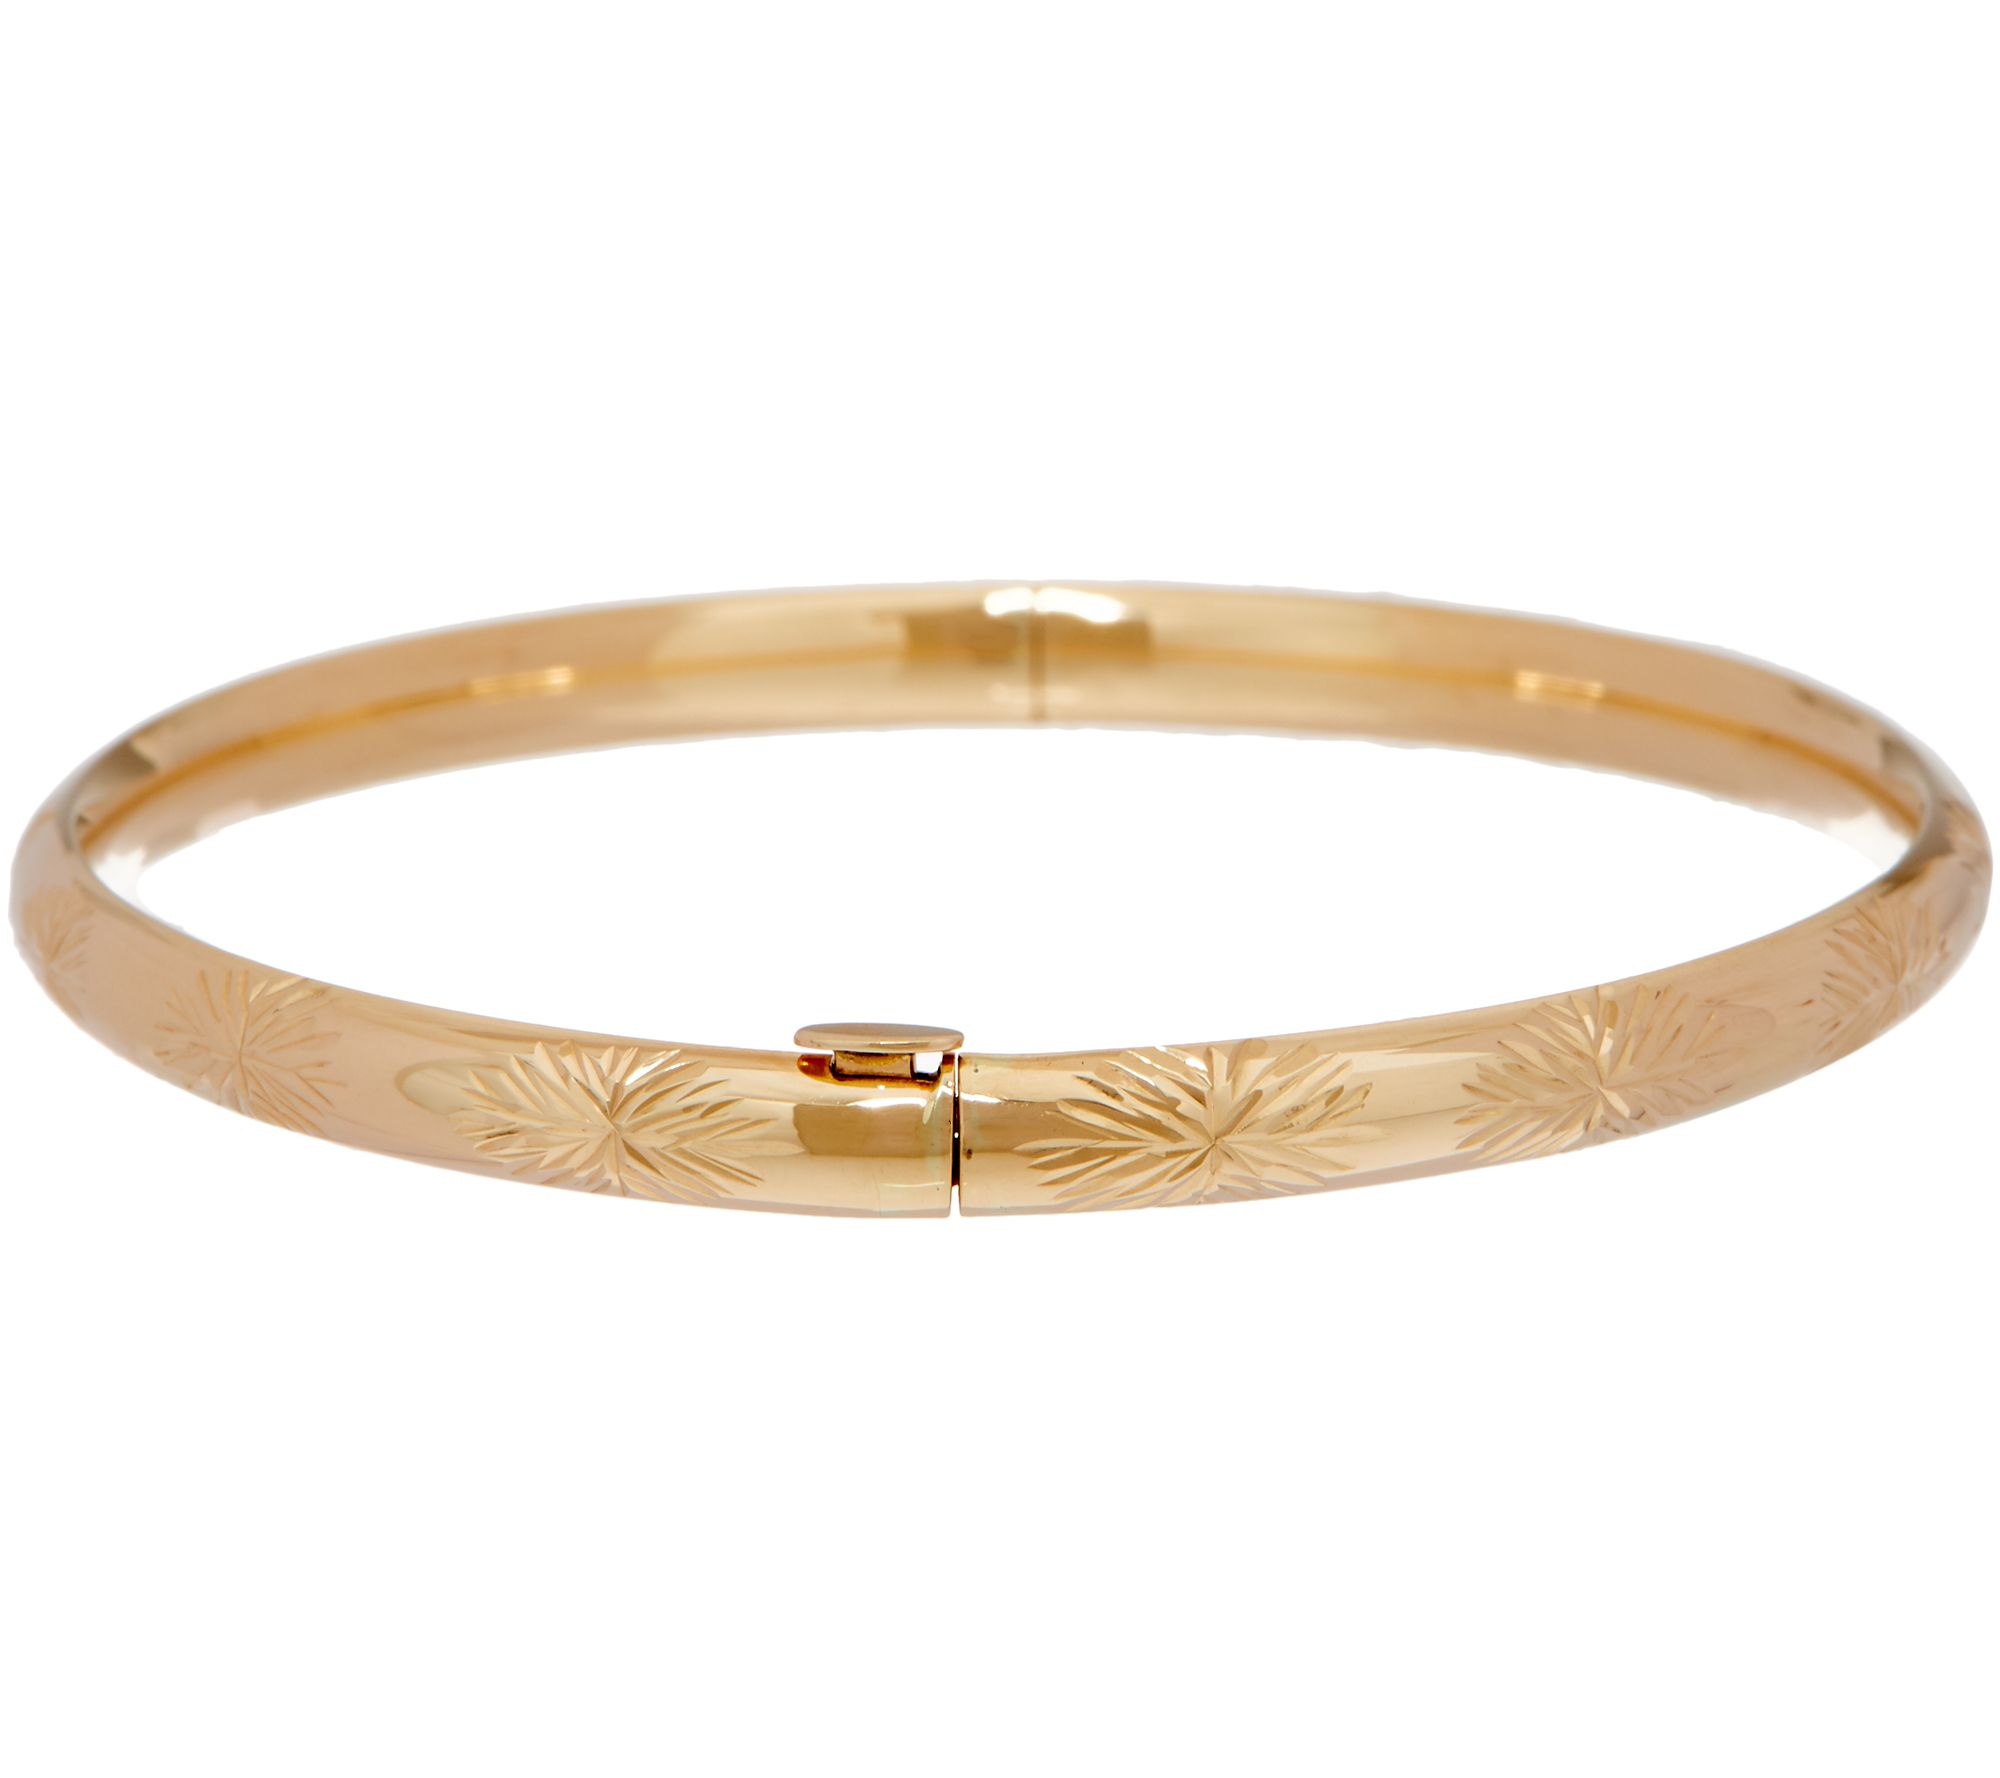 traditional bracelet type bangles women goldplated jewelry indian kada designer itm bangle party